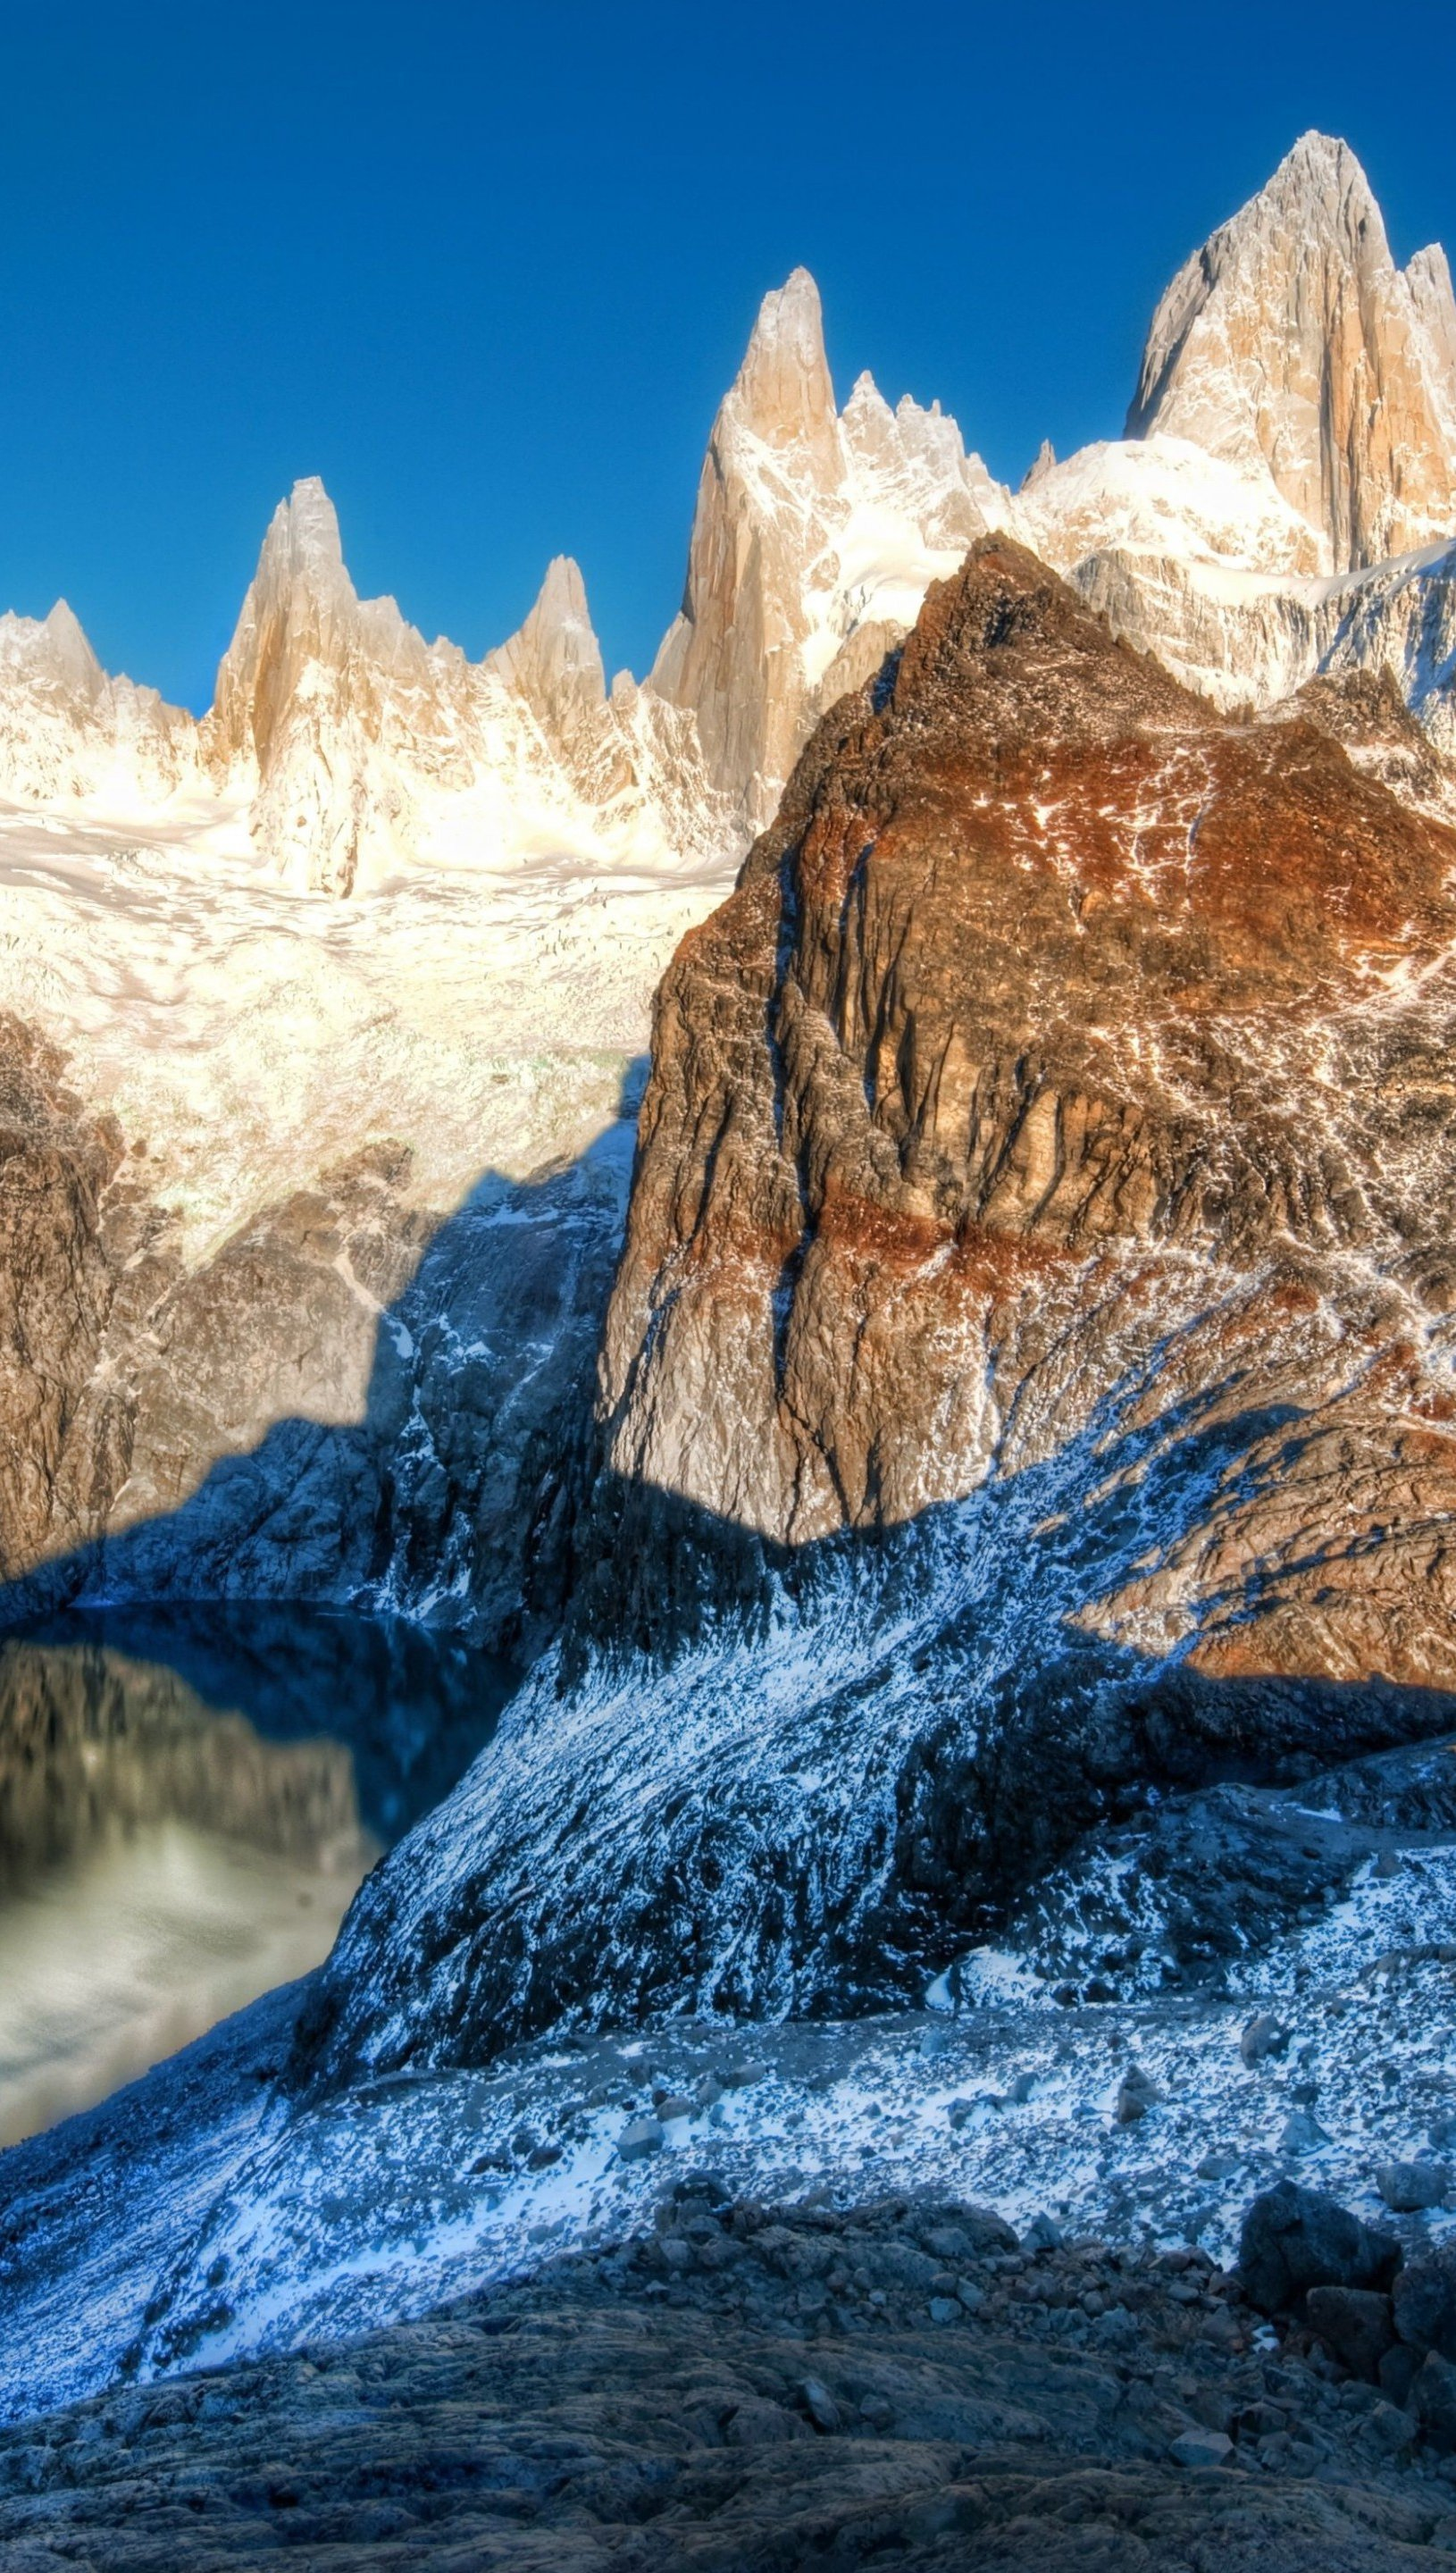 Wallpaper Andes Mountains in Argentina Vertical